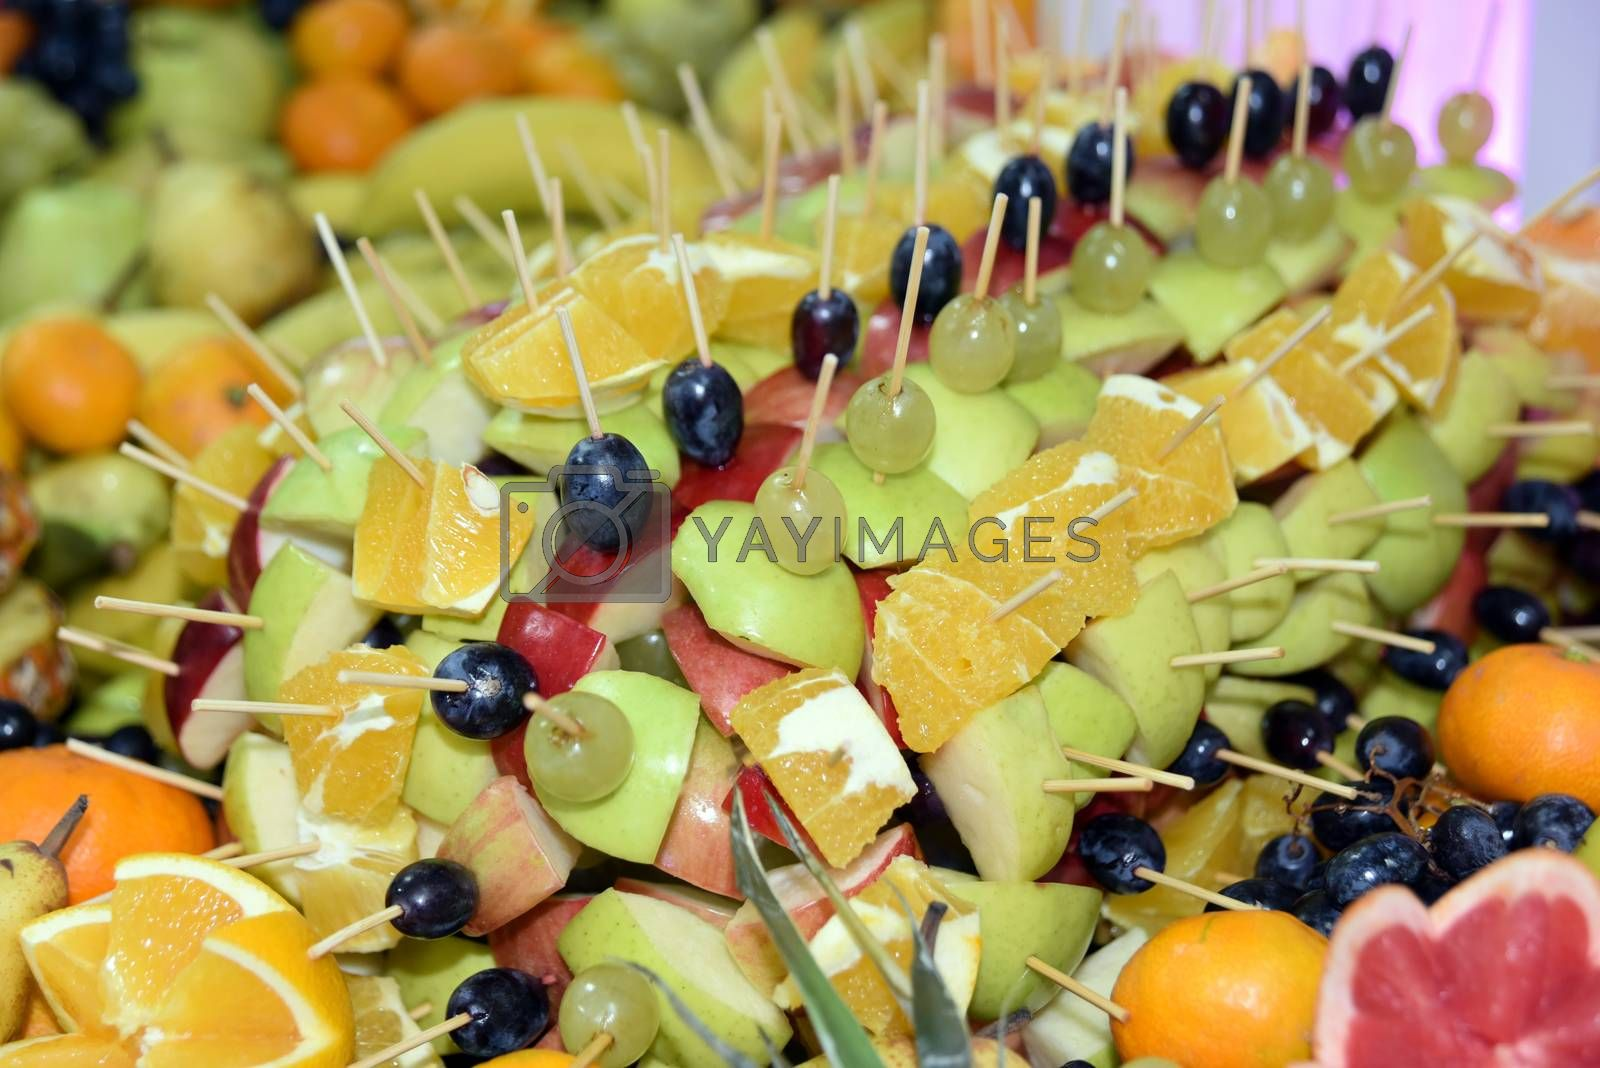 Royalty free image of Served various fruits by aselsa